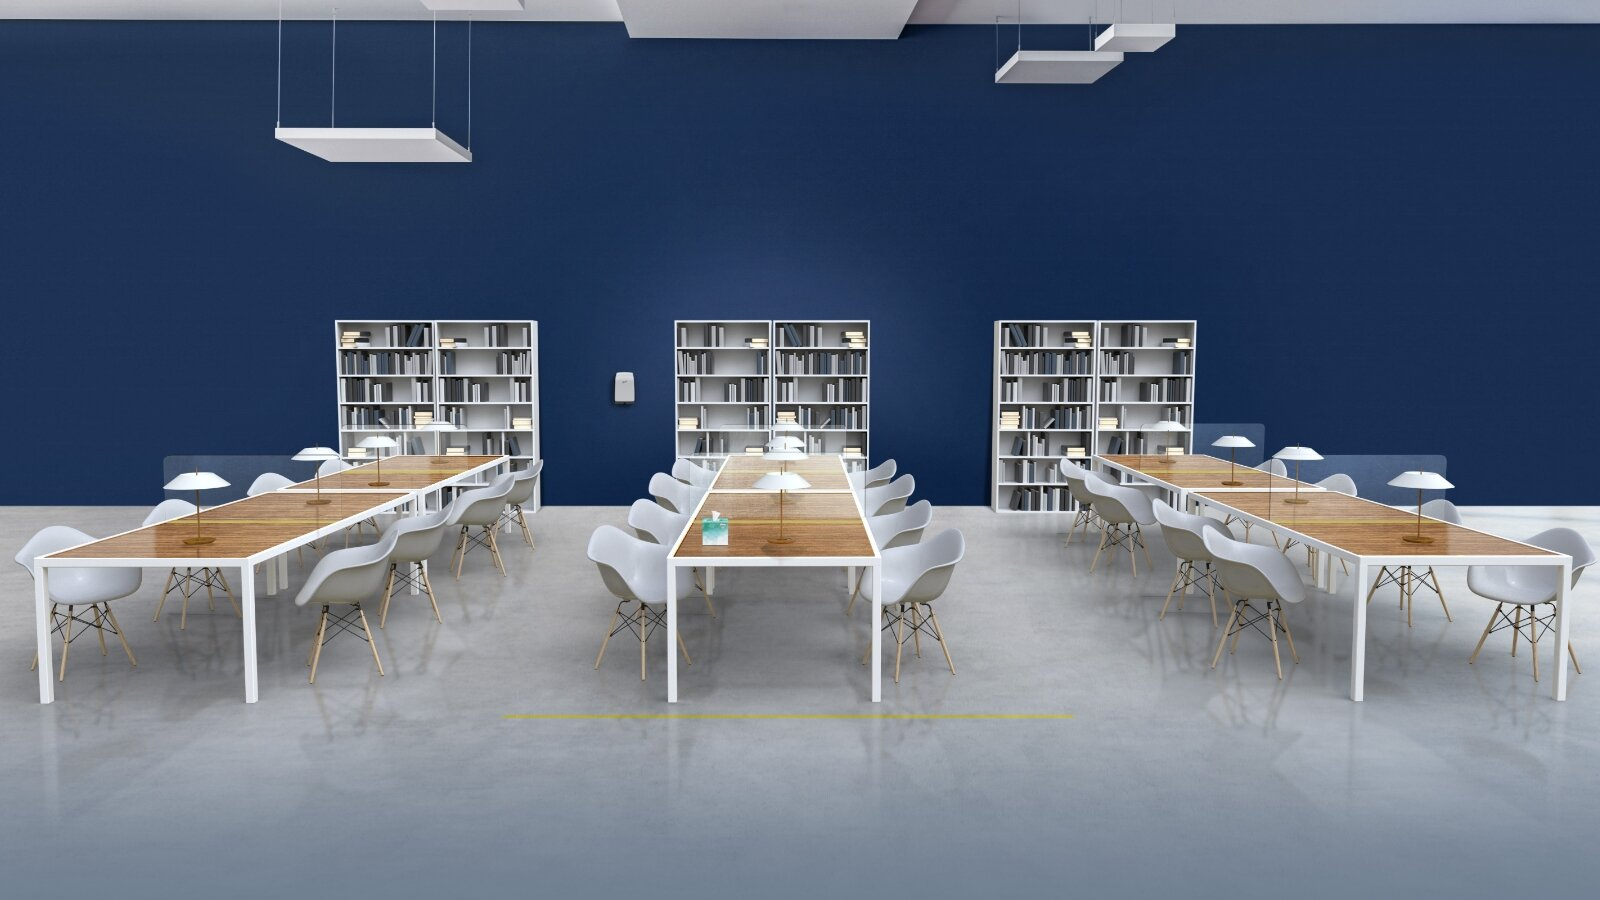 Rows of reading tables in library setting